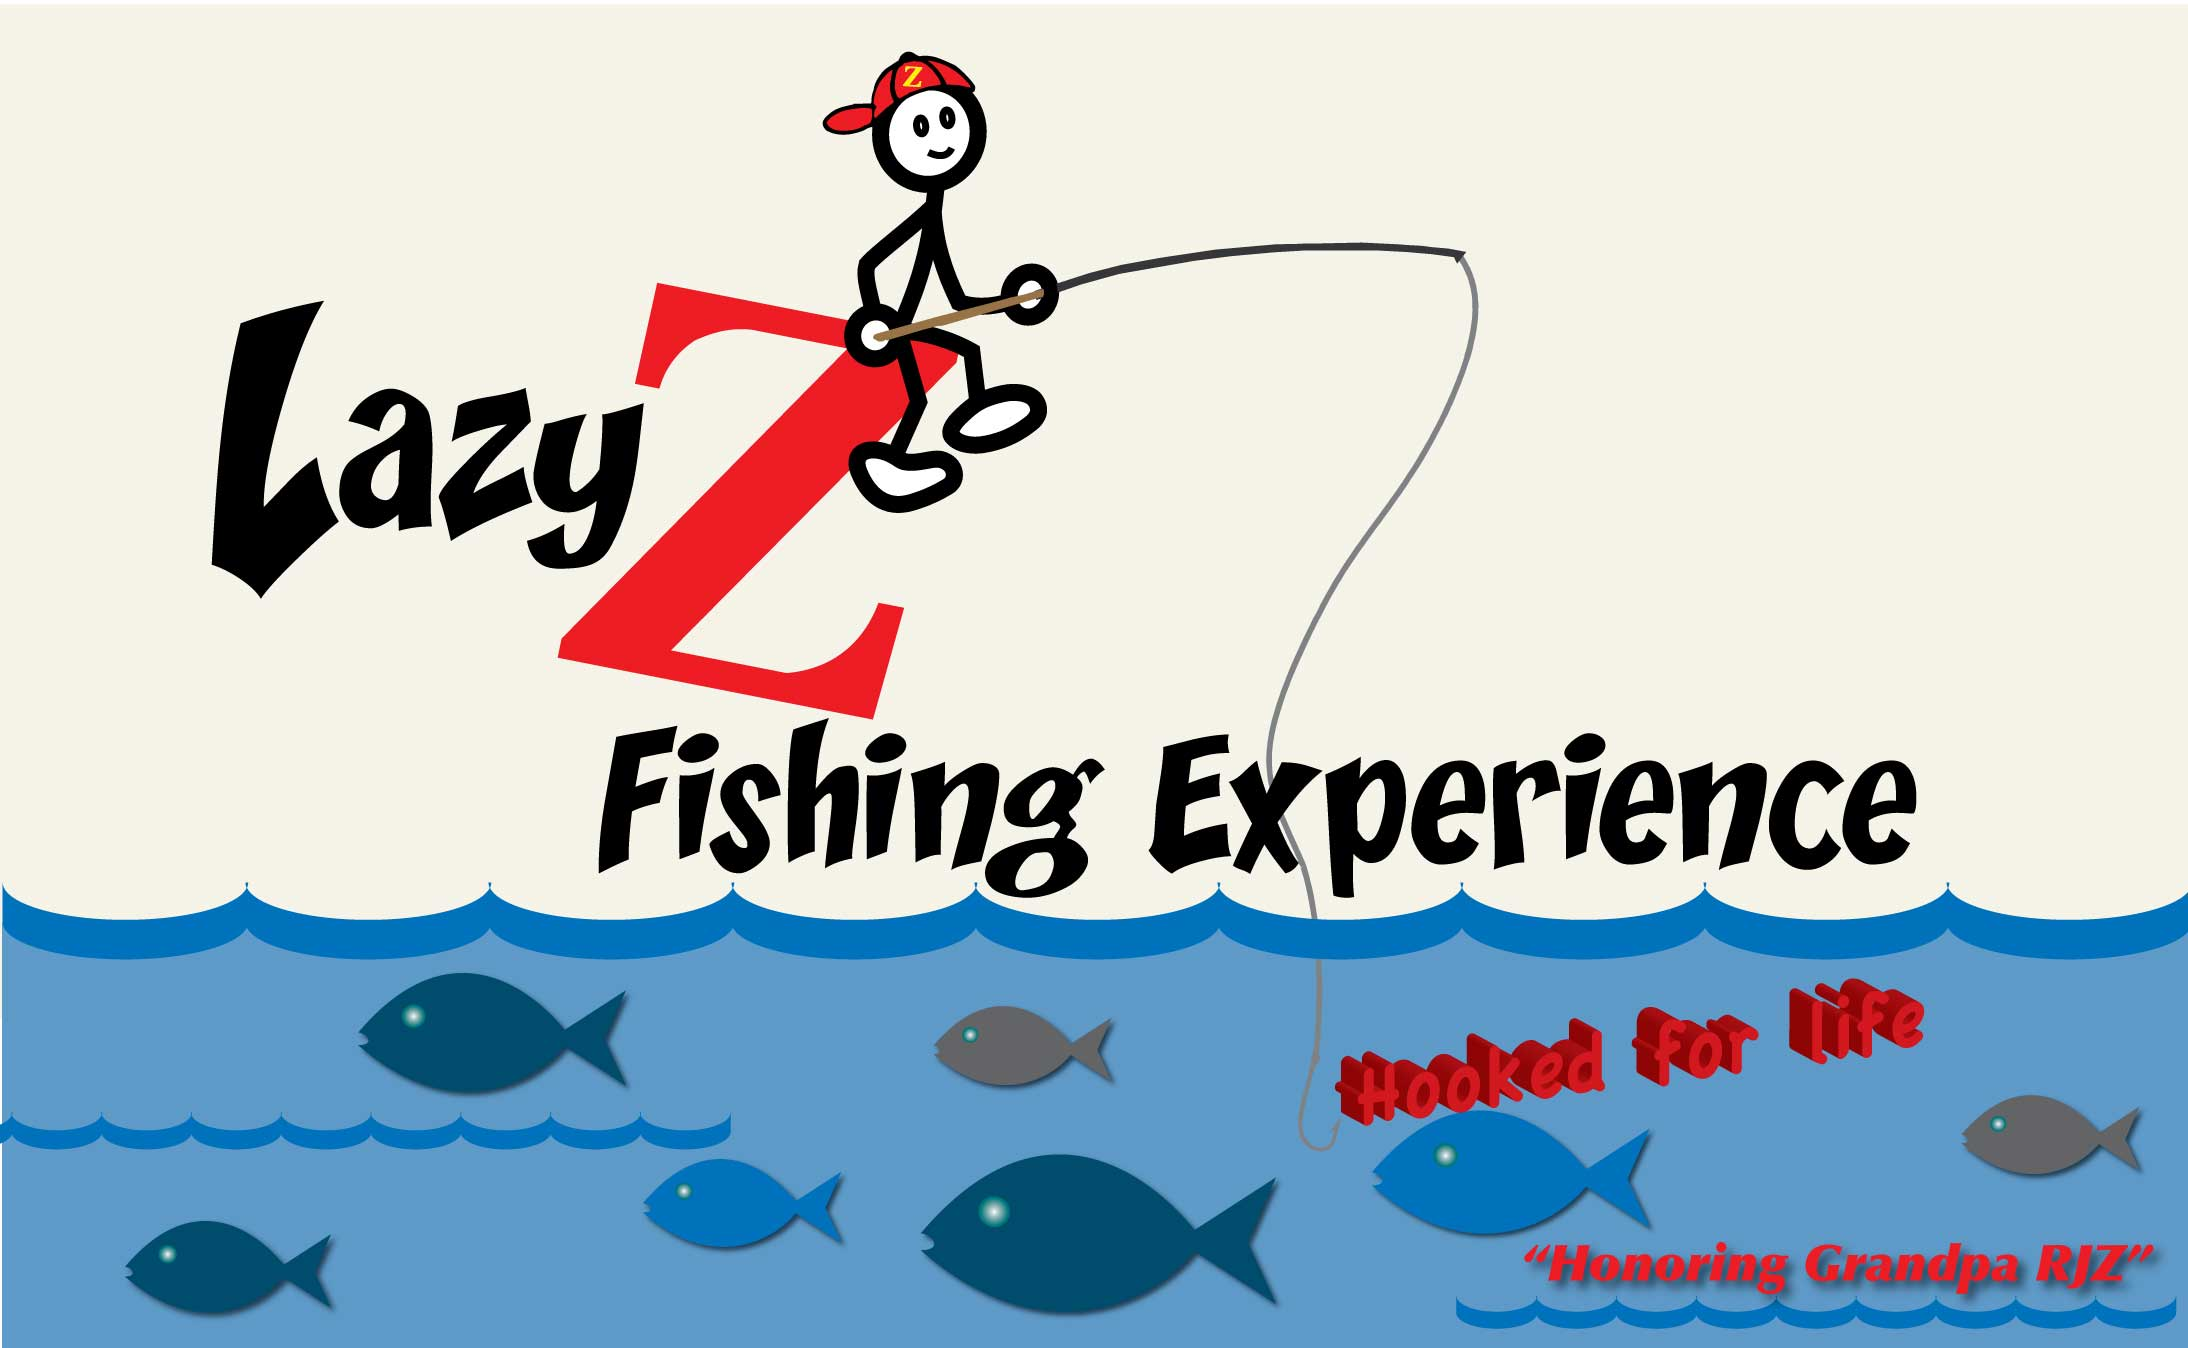 Lazy Z Fishing